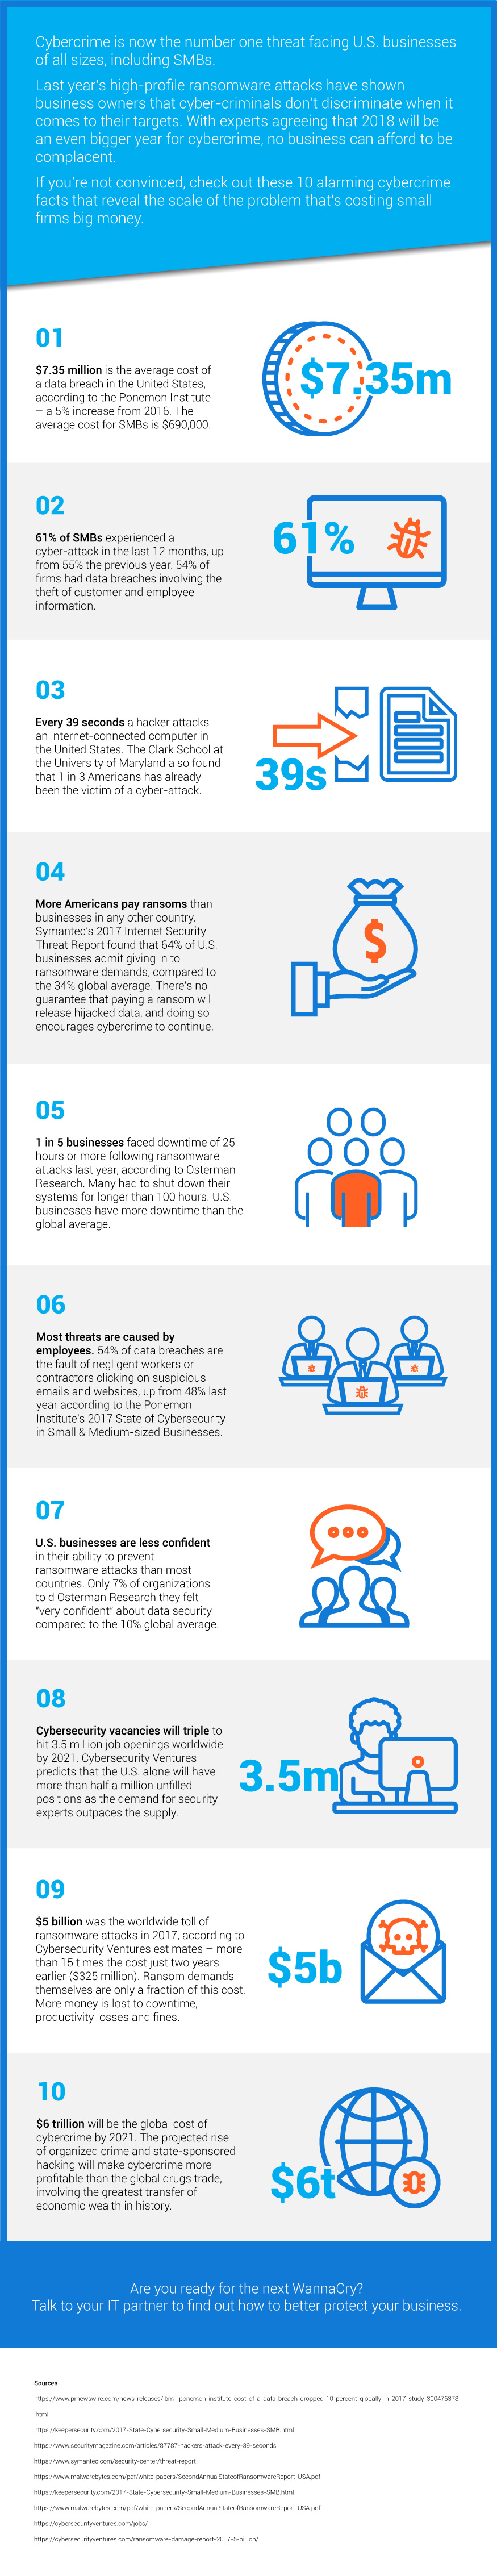 Top 10 Cybercrime Facts